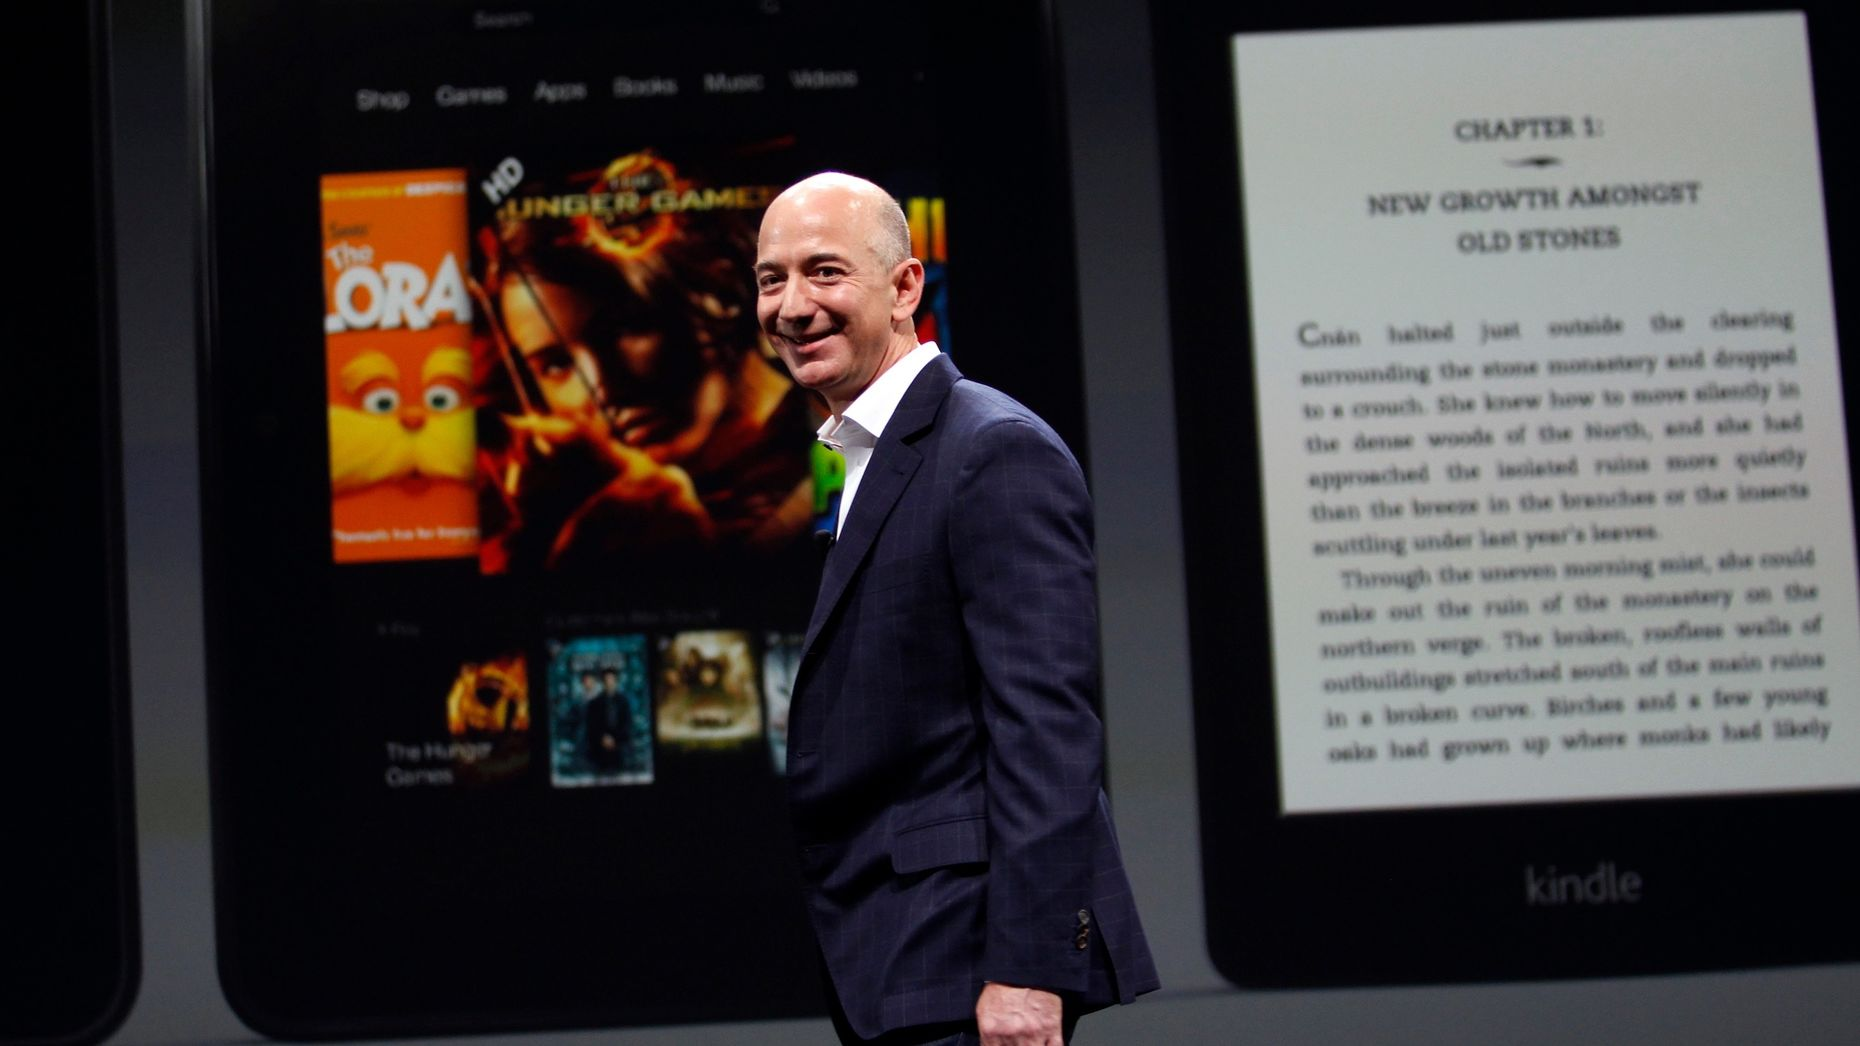 Amazon CEO Jeff Bezos unveiling the Kindle Fire tablet and a new Kindle e-reader in 2012. Photo by Bloomberg.